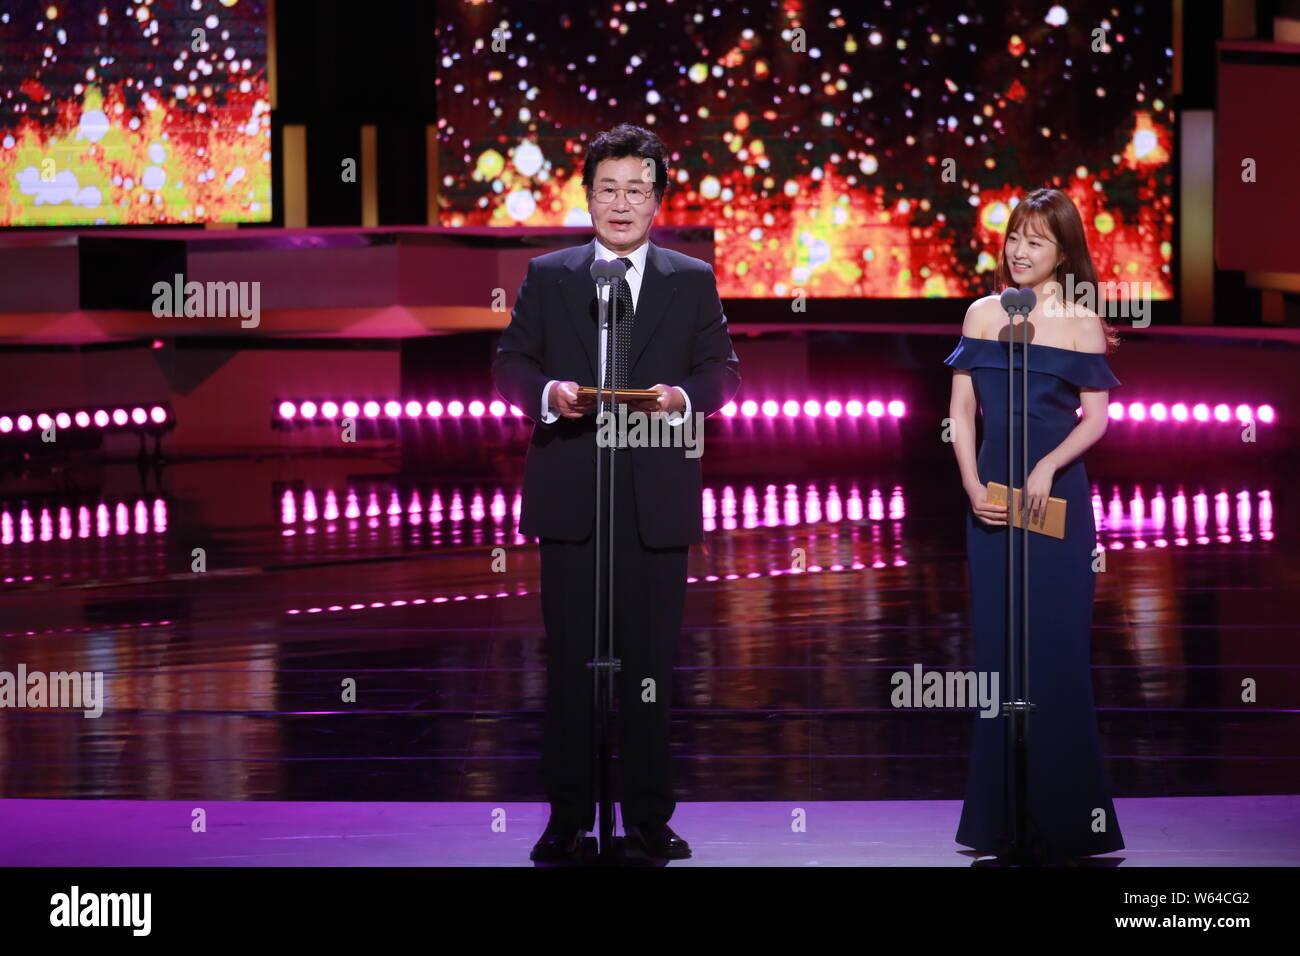 82 Seoul International Drama Awards 2012 Photos and Premium High Res  Pictures - Getty Images